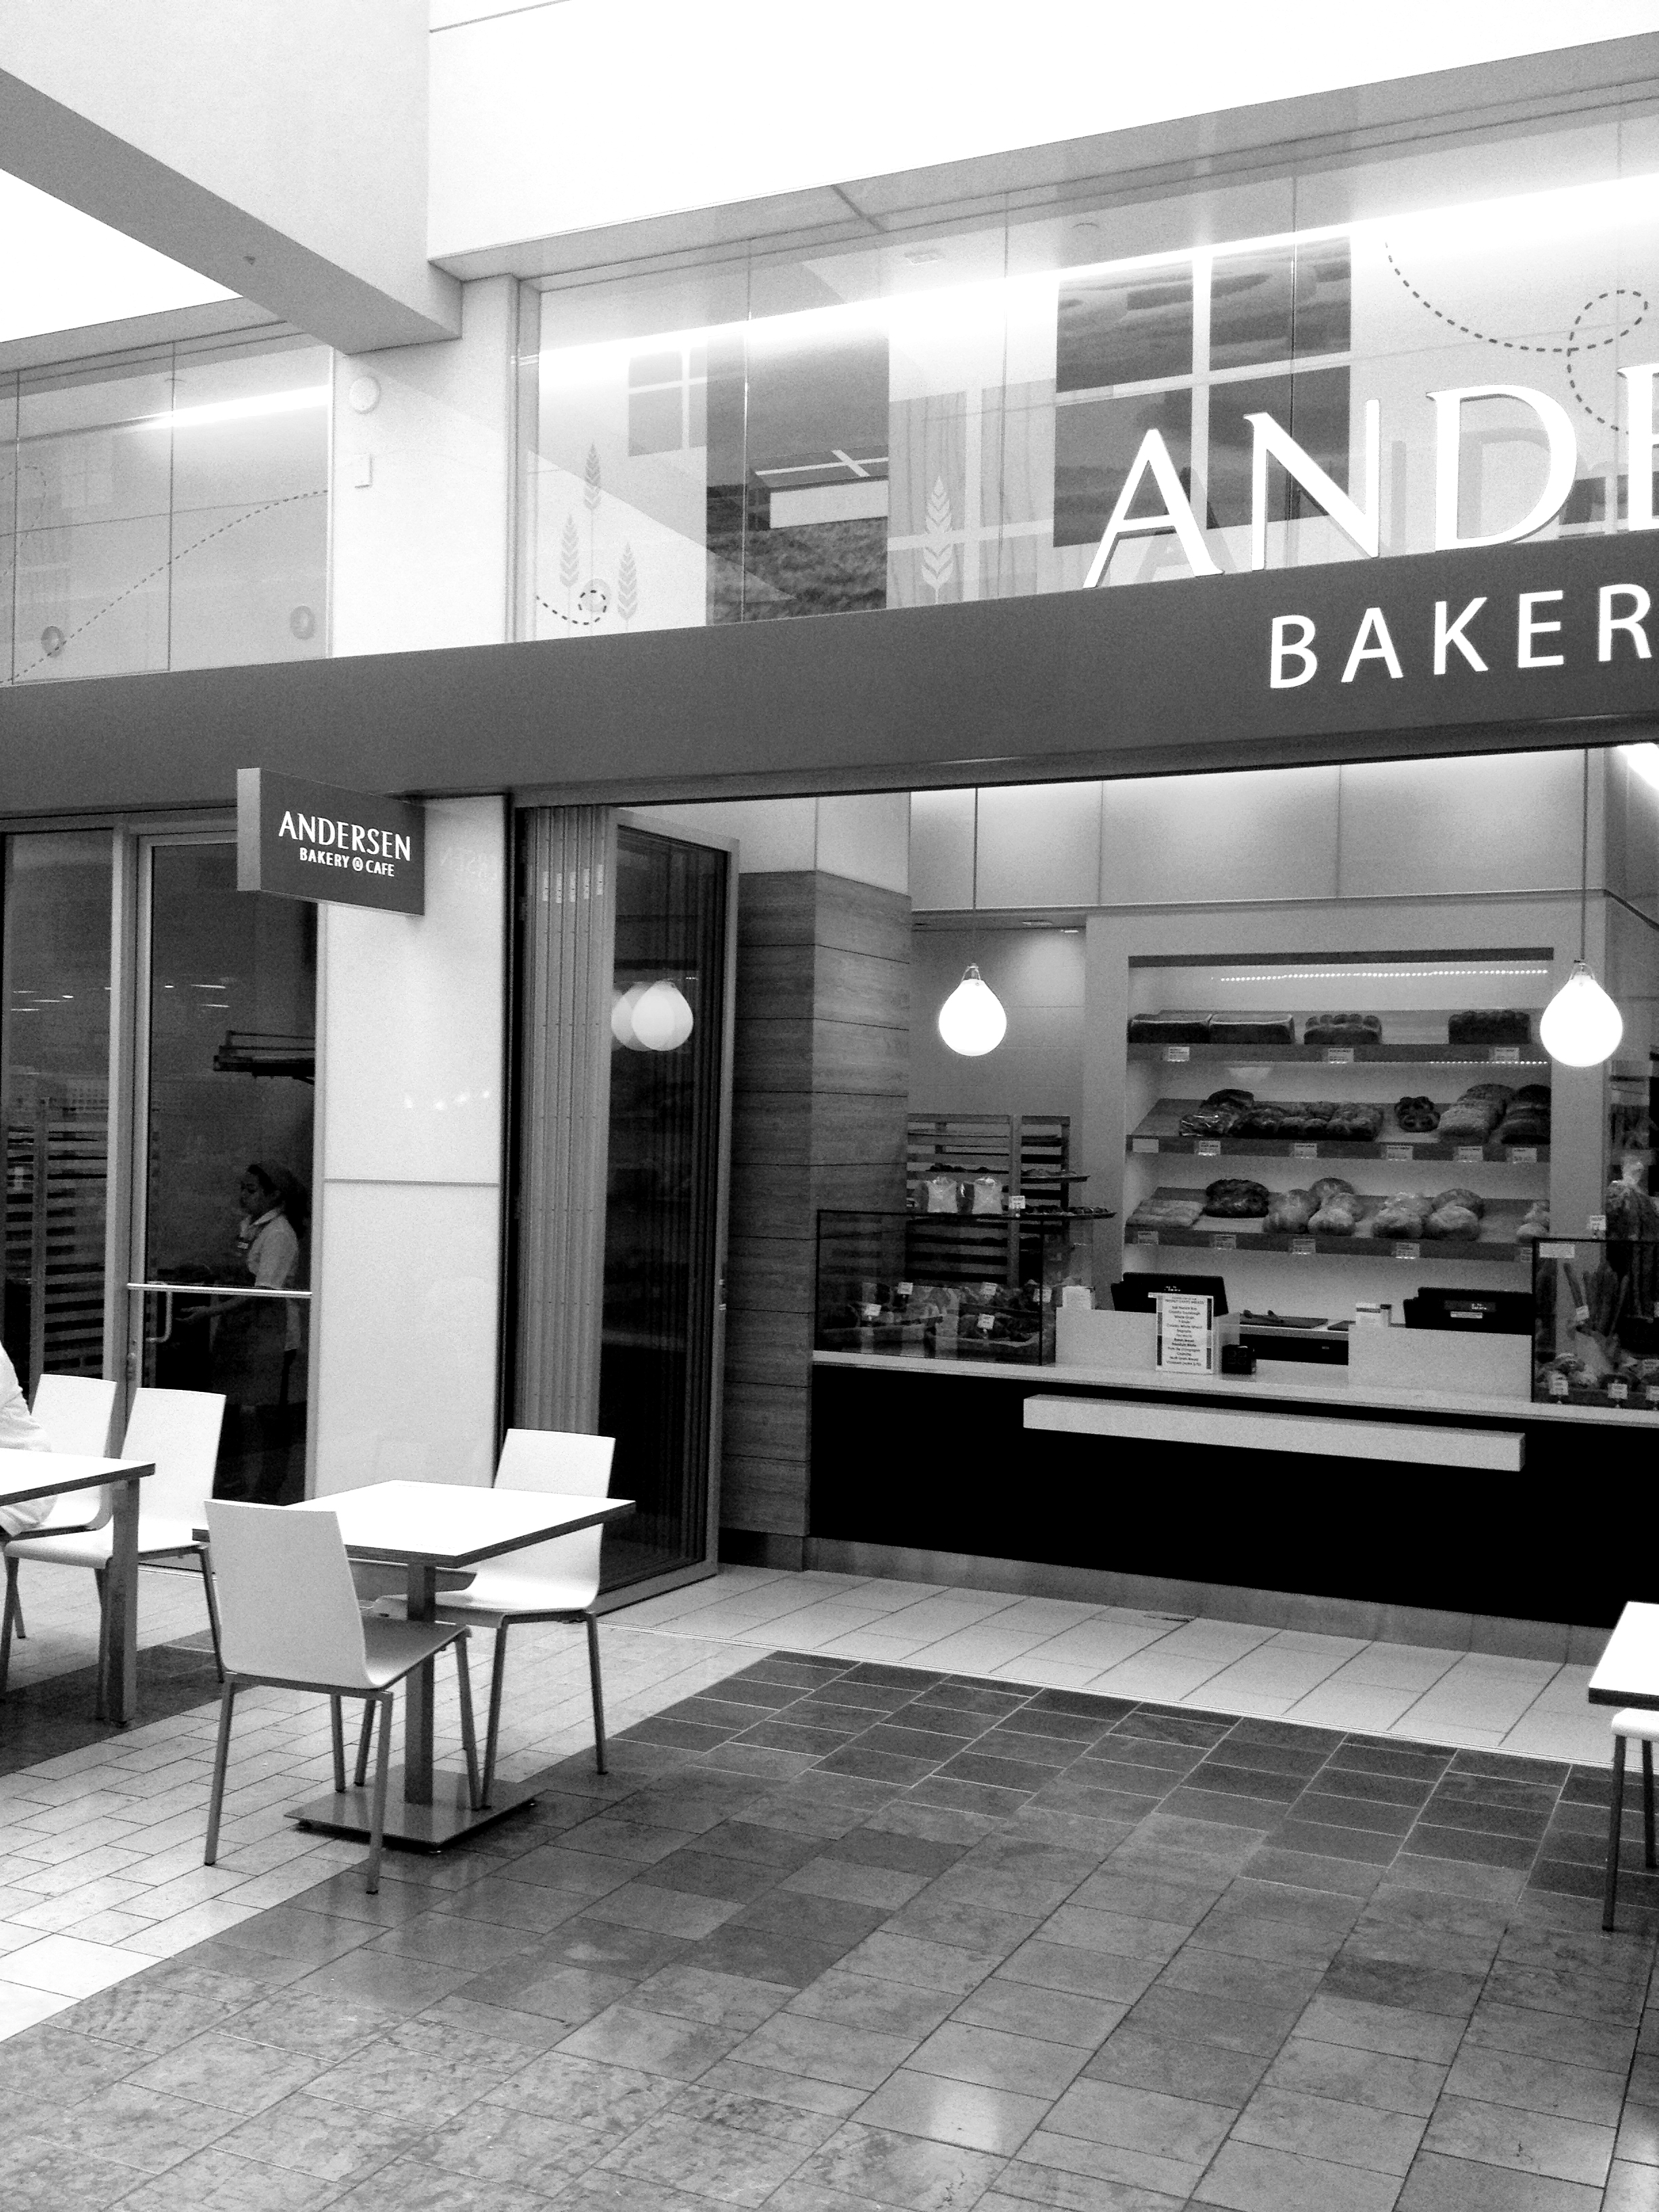 Patron seating area. Anderson Bakery (Oakridge Mall, San Jose, CA)